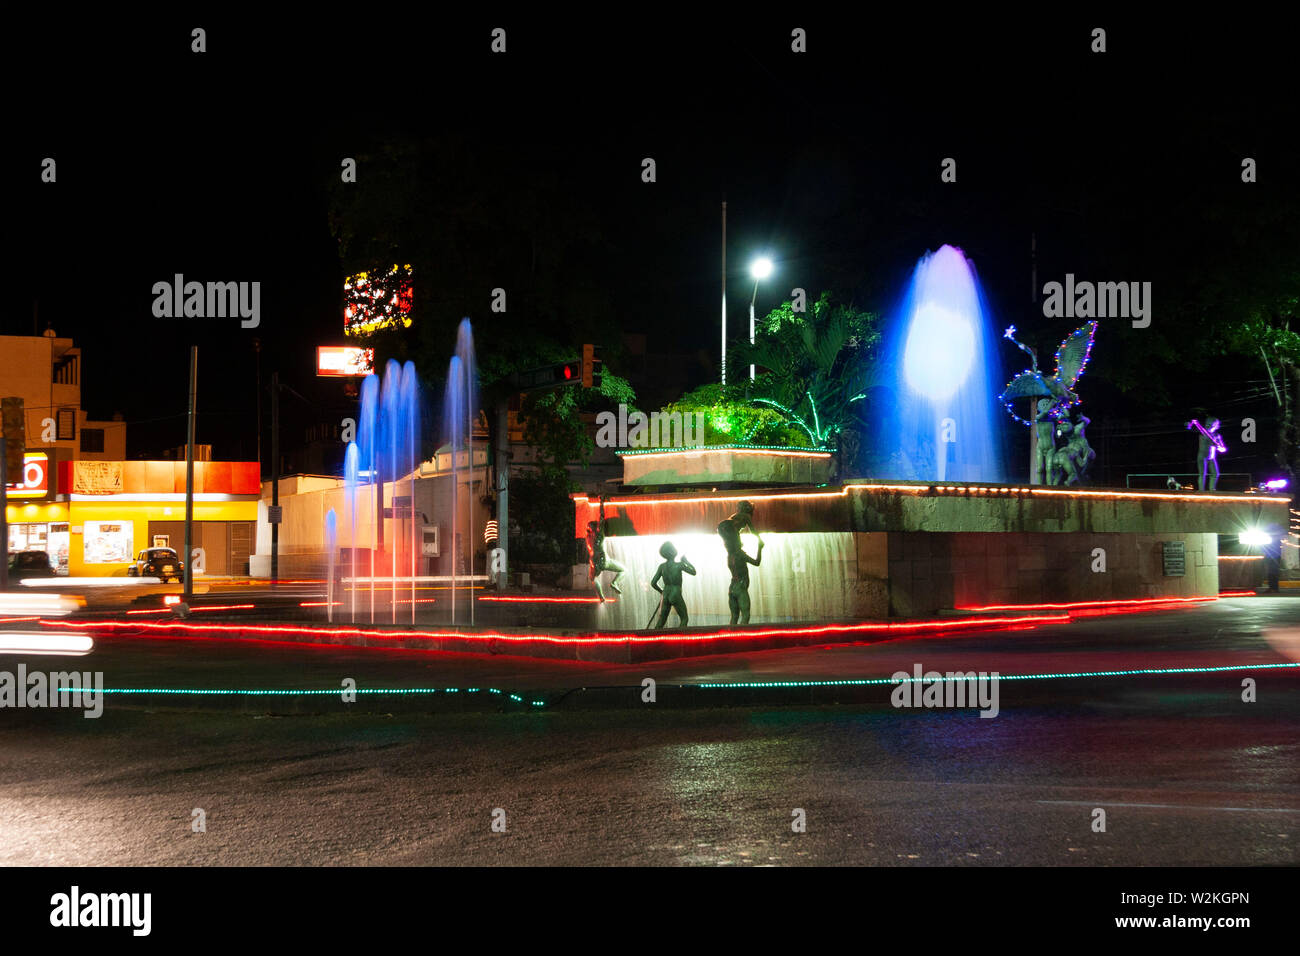 Villahermosa,Tabasco,Mexico.December 18th, 2008.Fountain of the Naughty Children, cultural heritage of Tabasco. Stock Photo